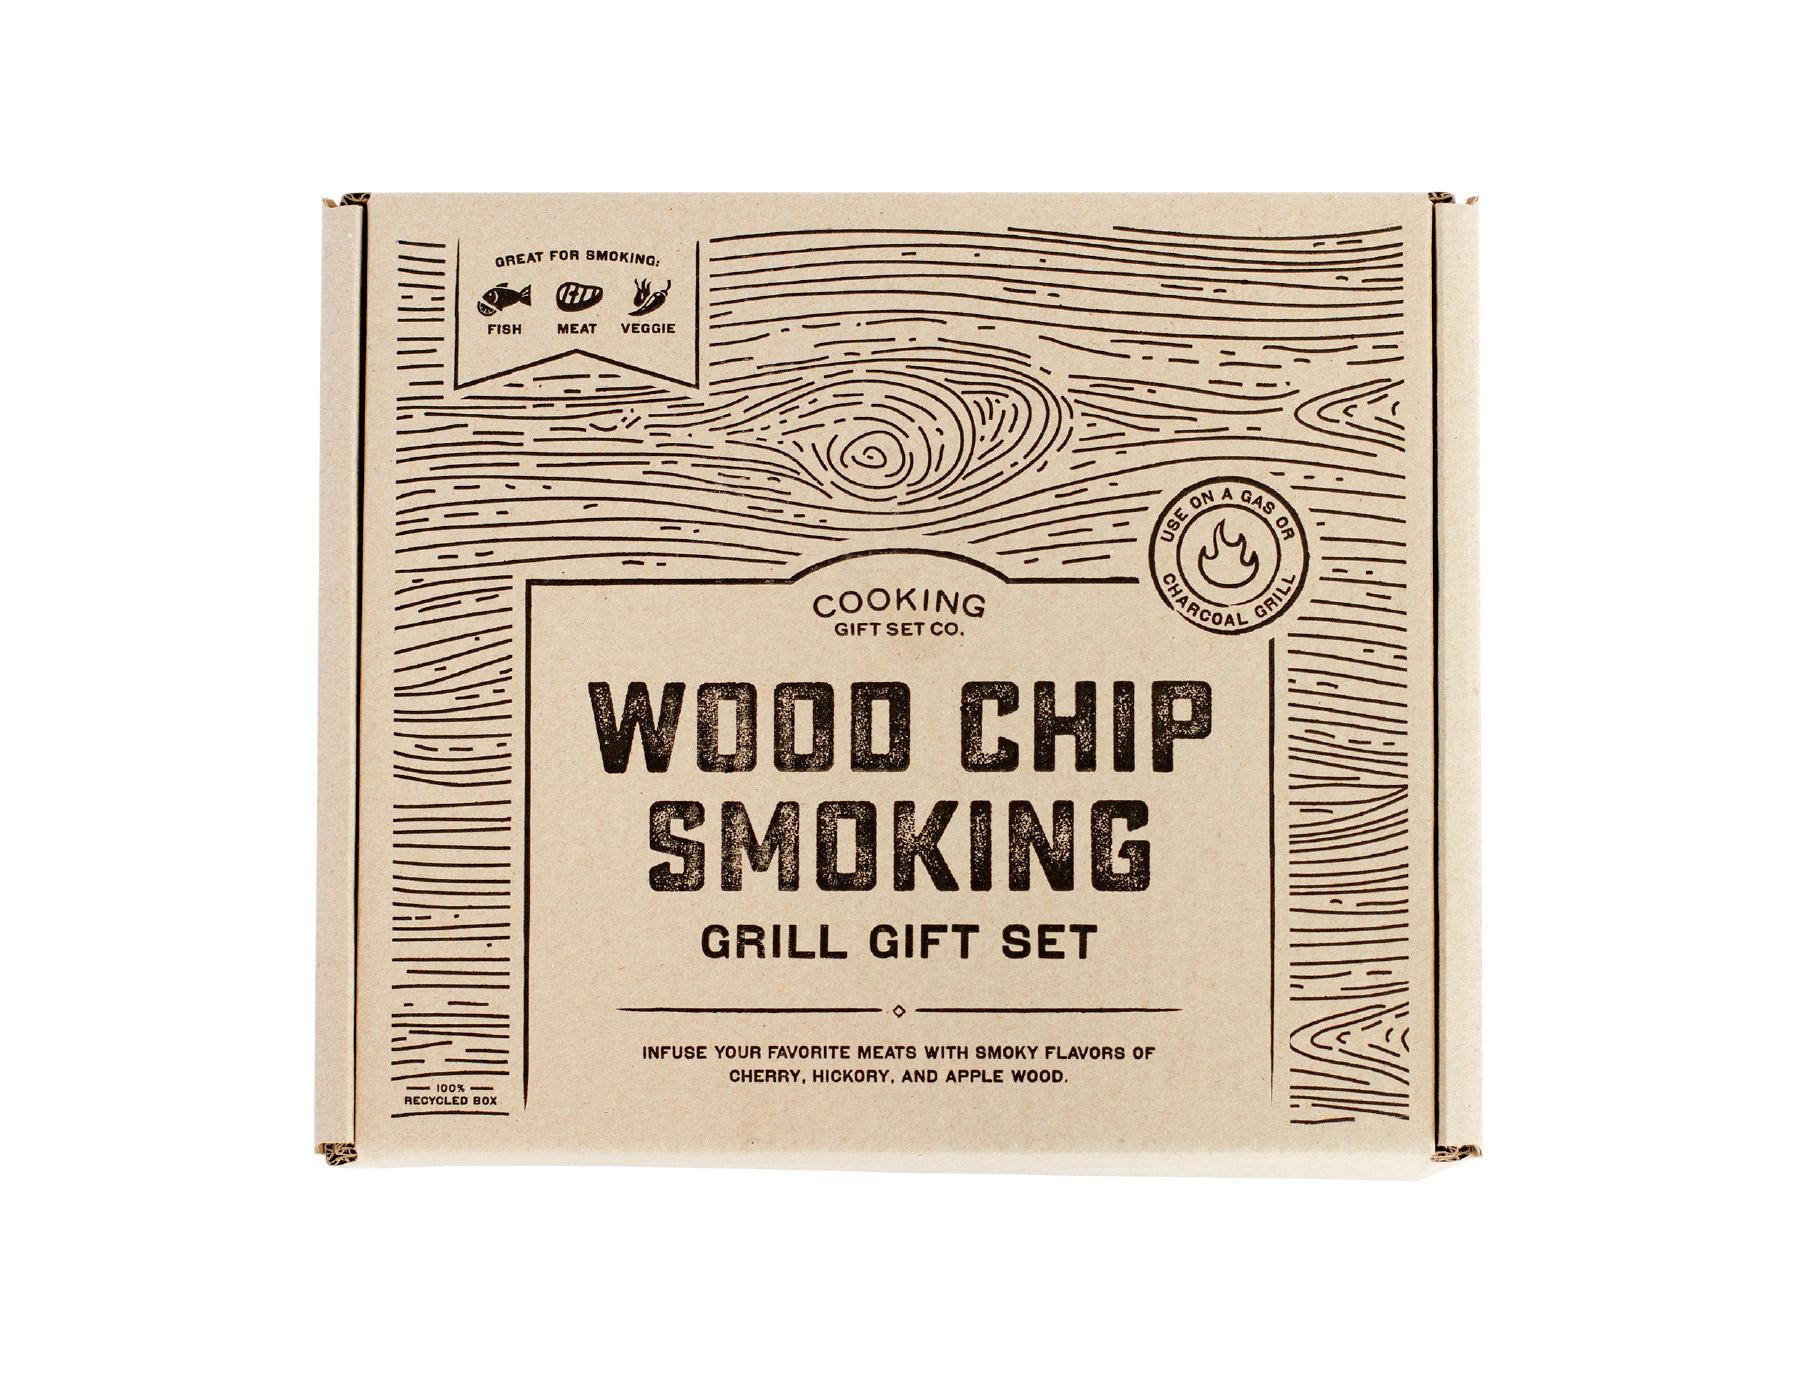 Wood inspired packaging design